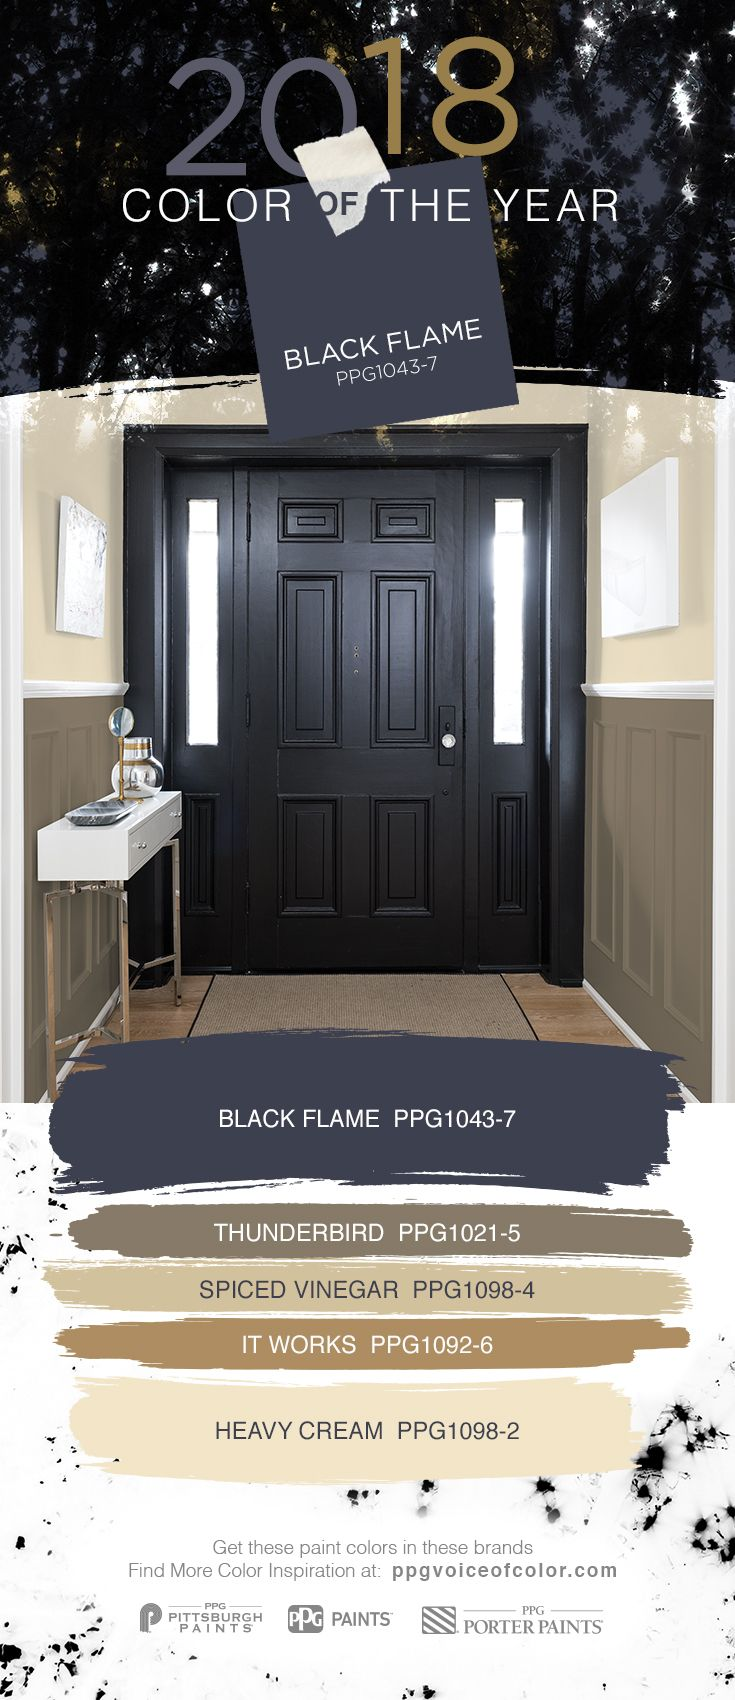 Black interior doors make a statement. Try the 2018 Color of the Year, Black Flame by PPG in your entryway.